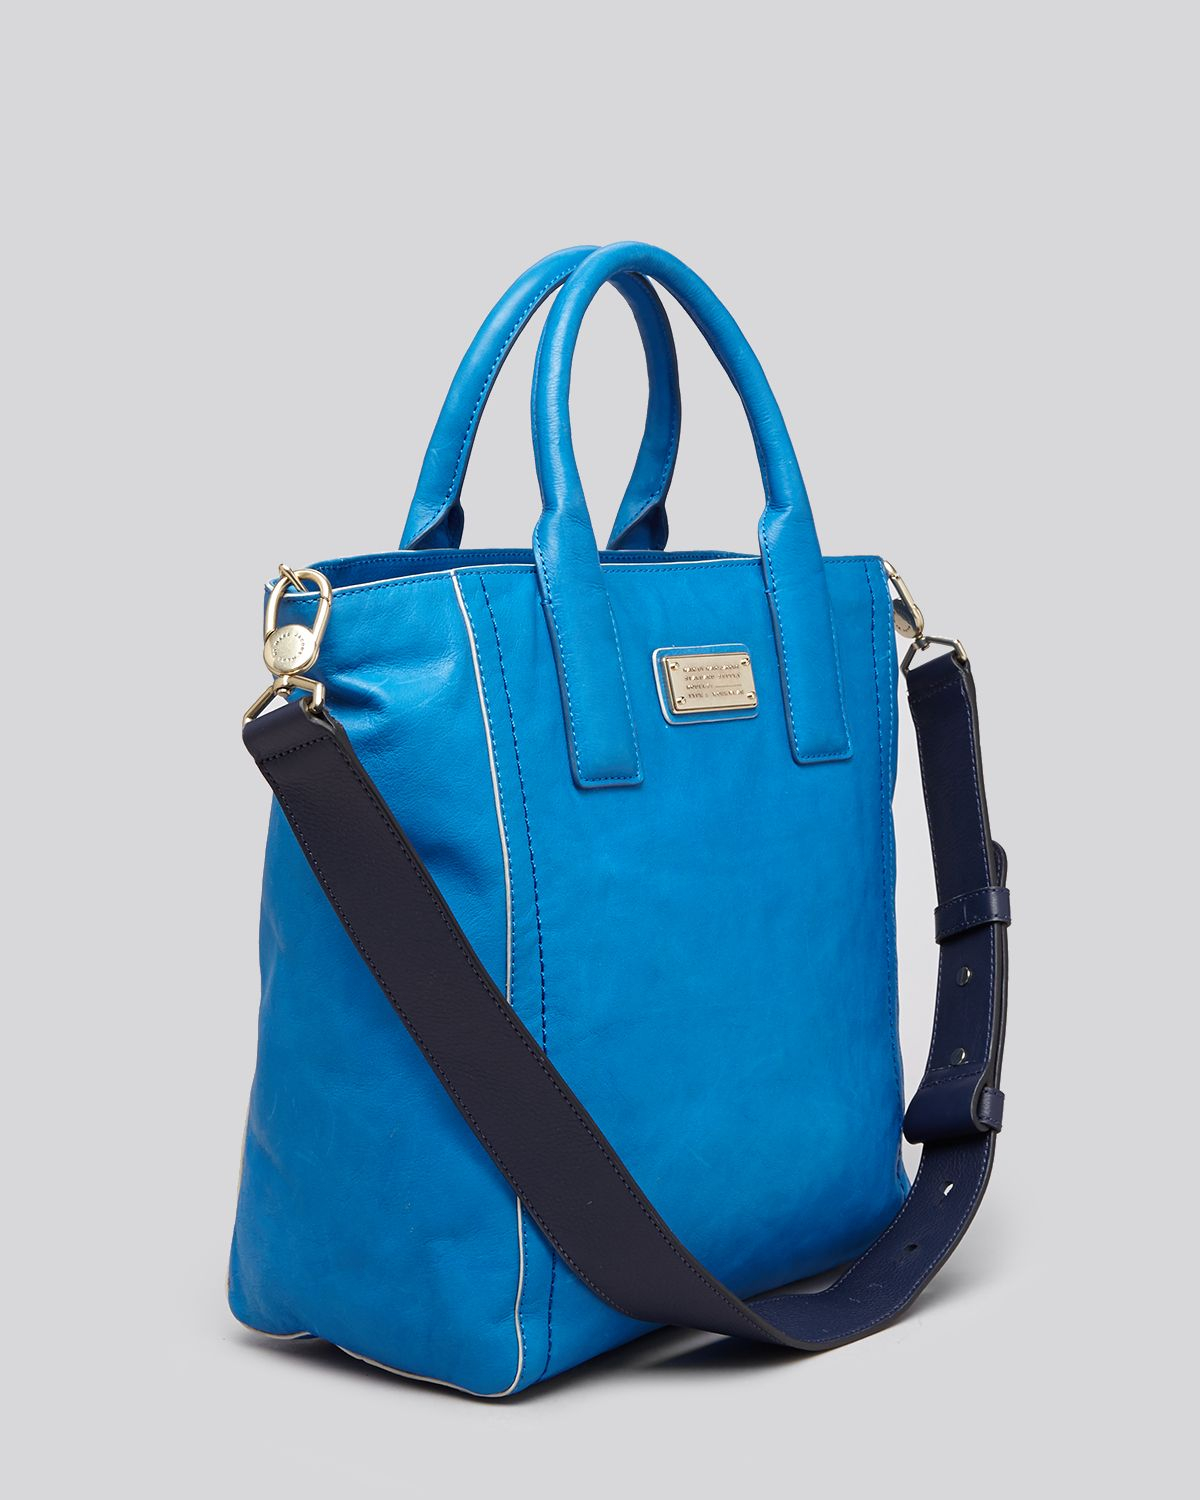 Marc By Marc Jacobs Tote - Mility Utility With Contrast Piping in Blue